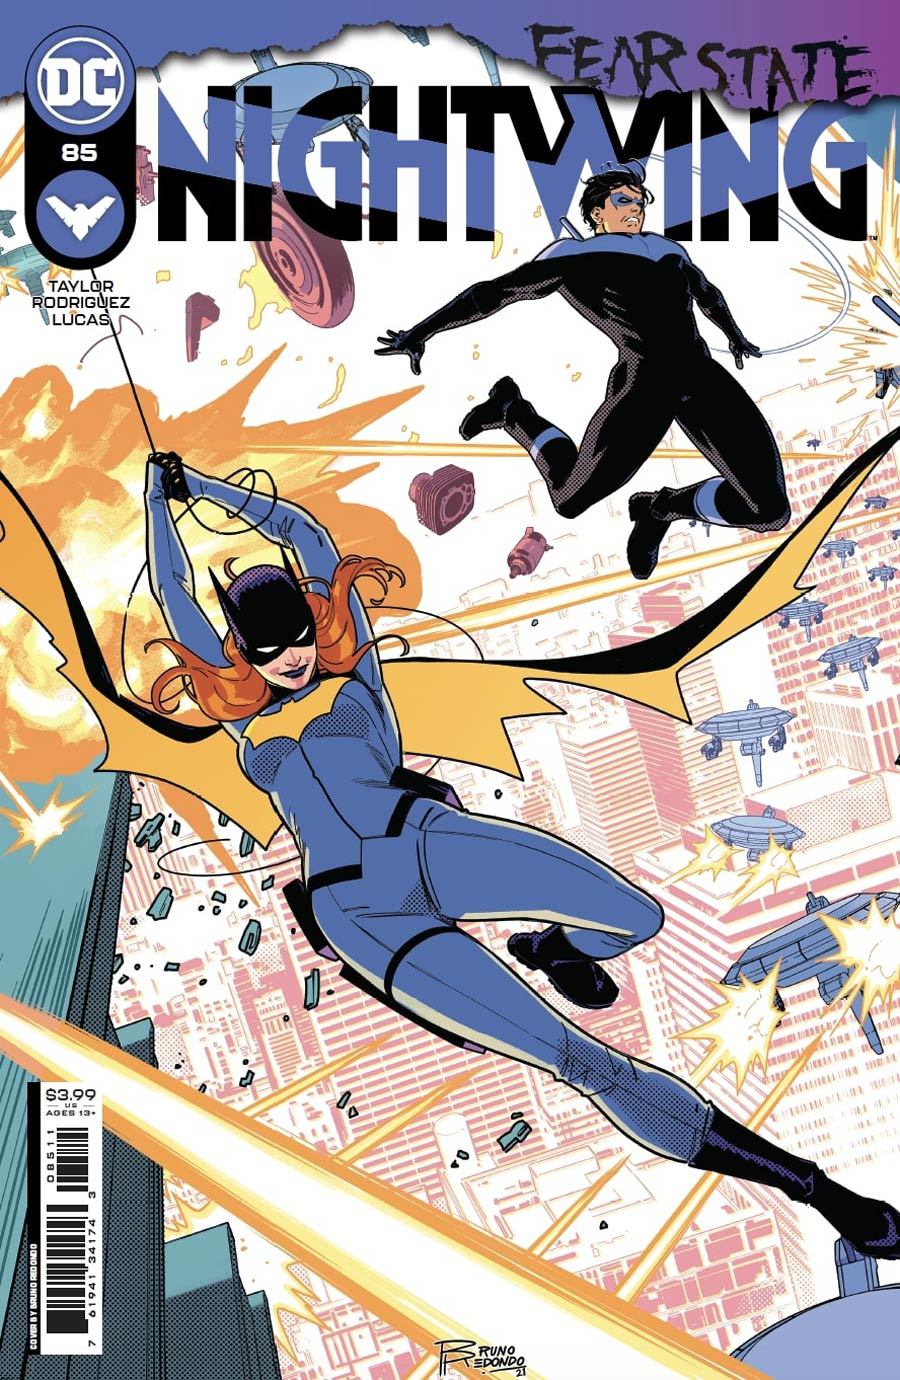 Nightwing Vol 4 #85 Cover A Regular Bruno Redondo Cover (Fear State Tie-In)